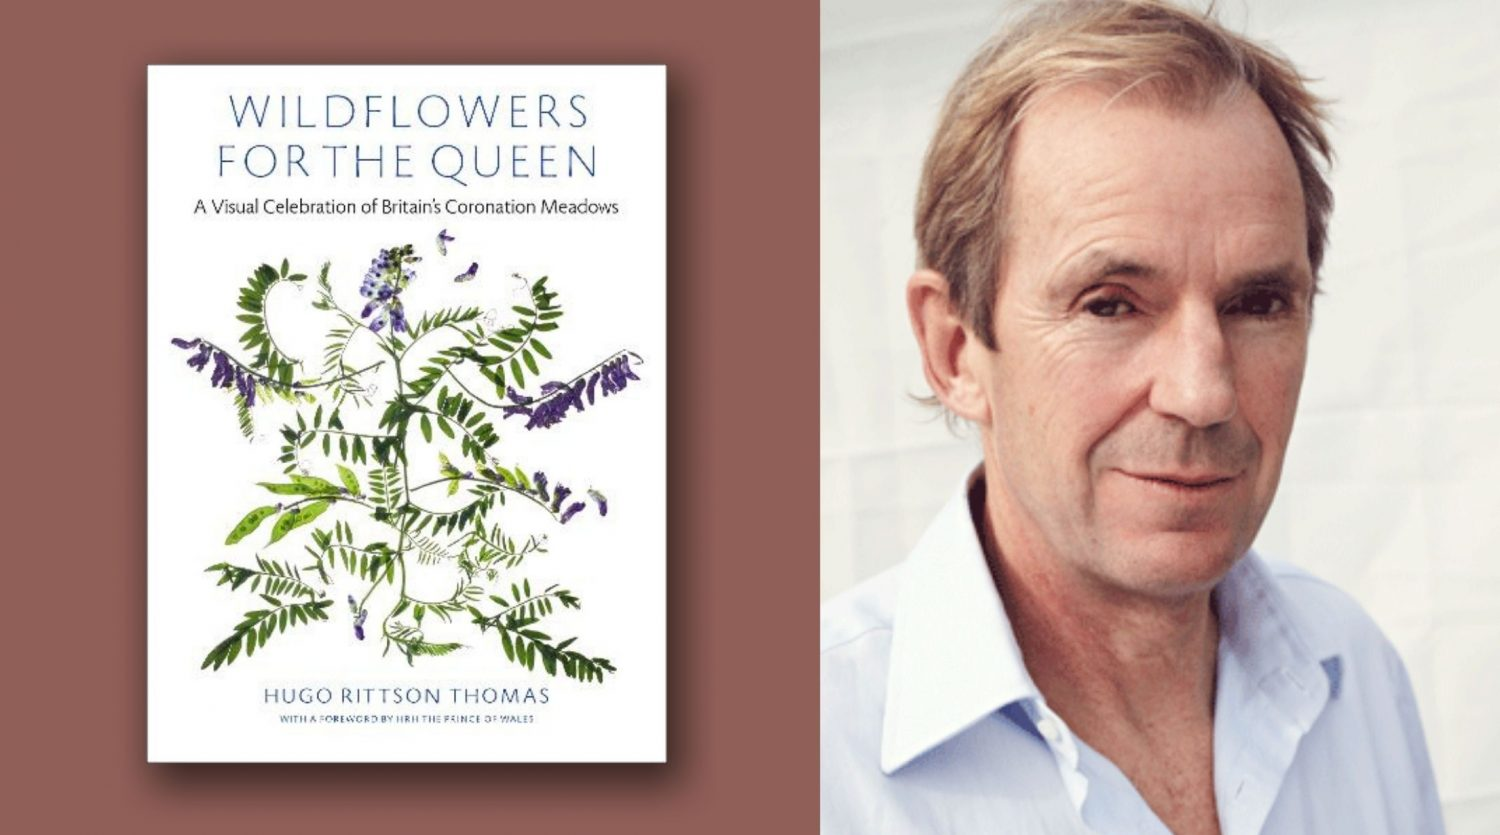 A graphic of the Wildflowers for the Queen book cover and its author Hugo Rittson Thomas